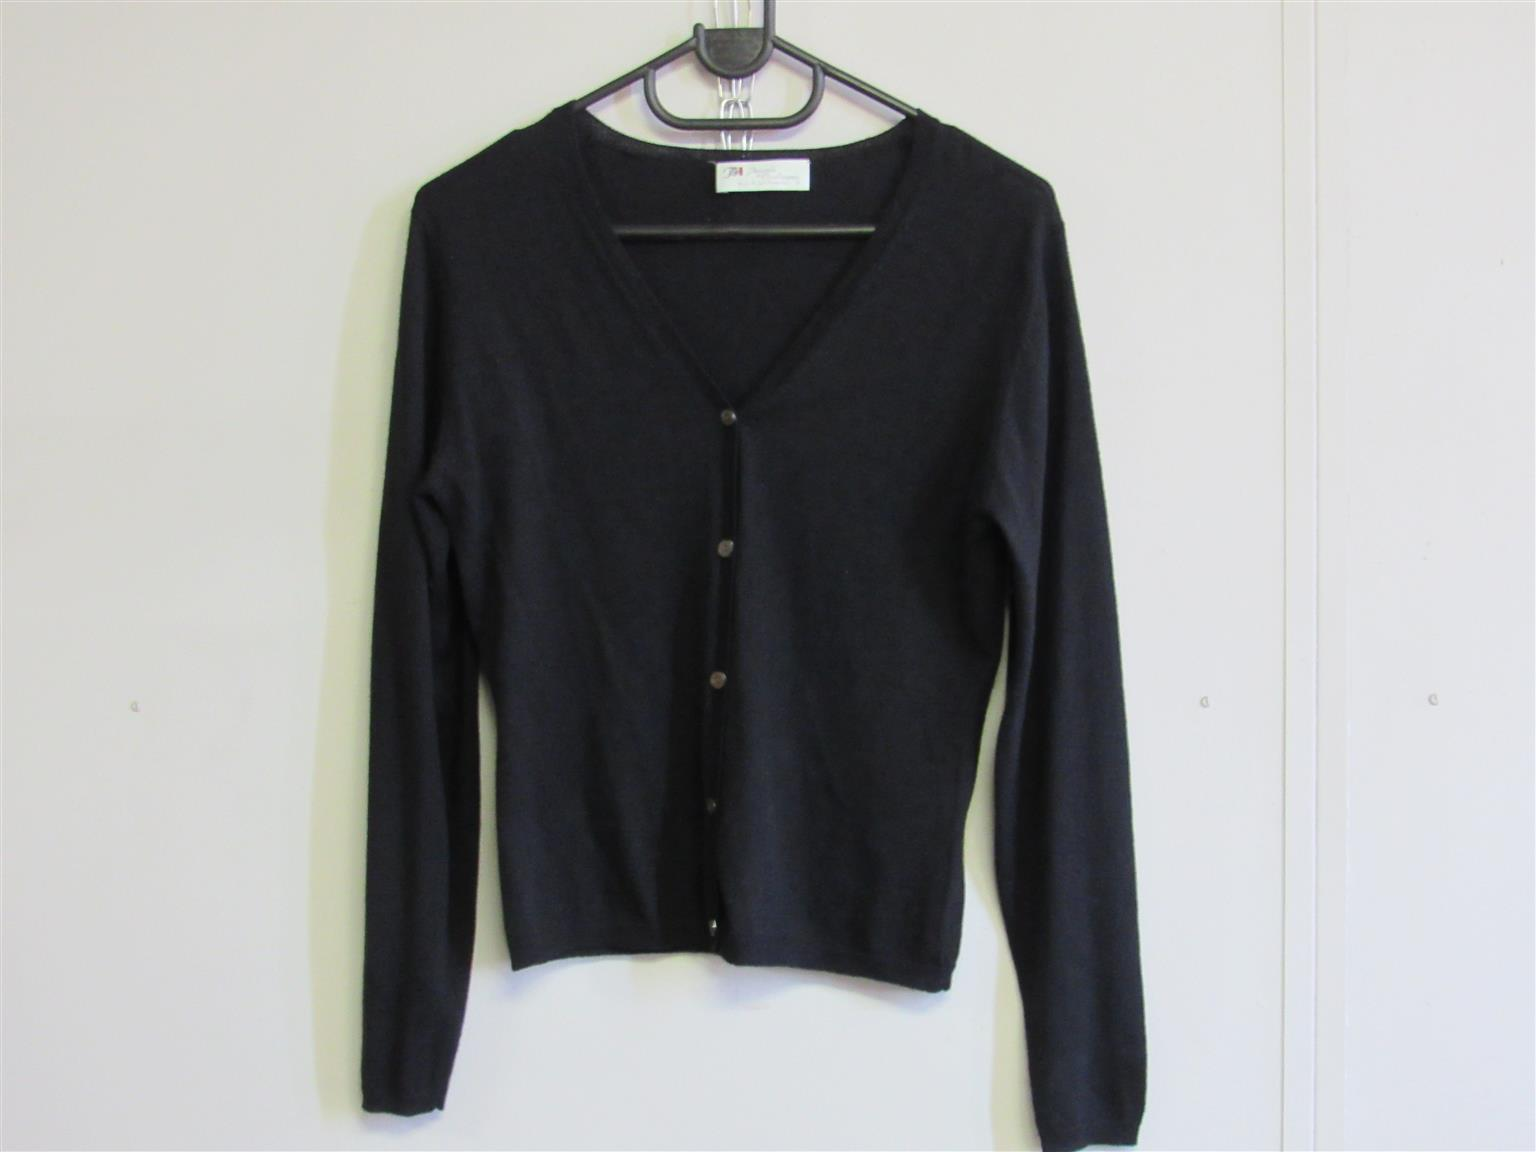 Cashmere Black Cardigan with buttons - medium